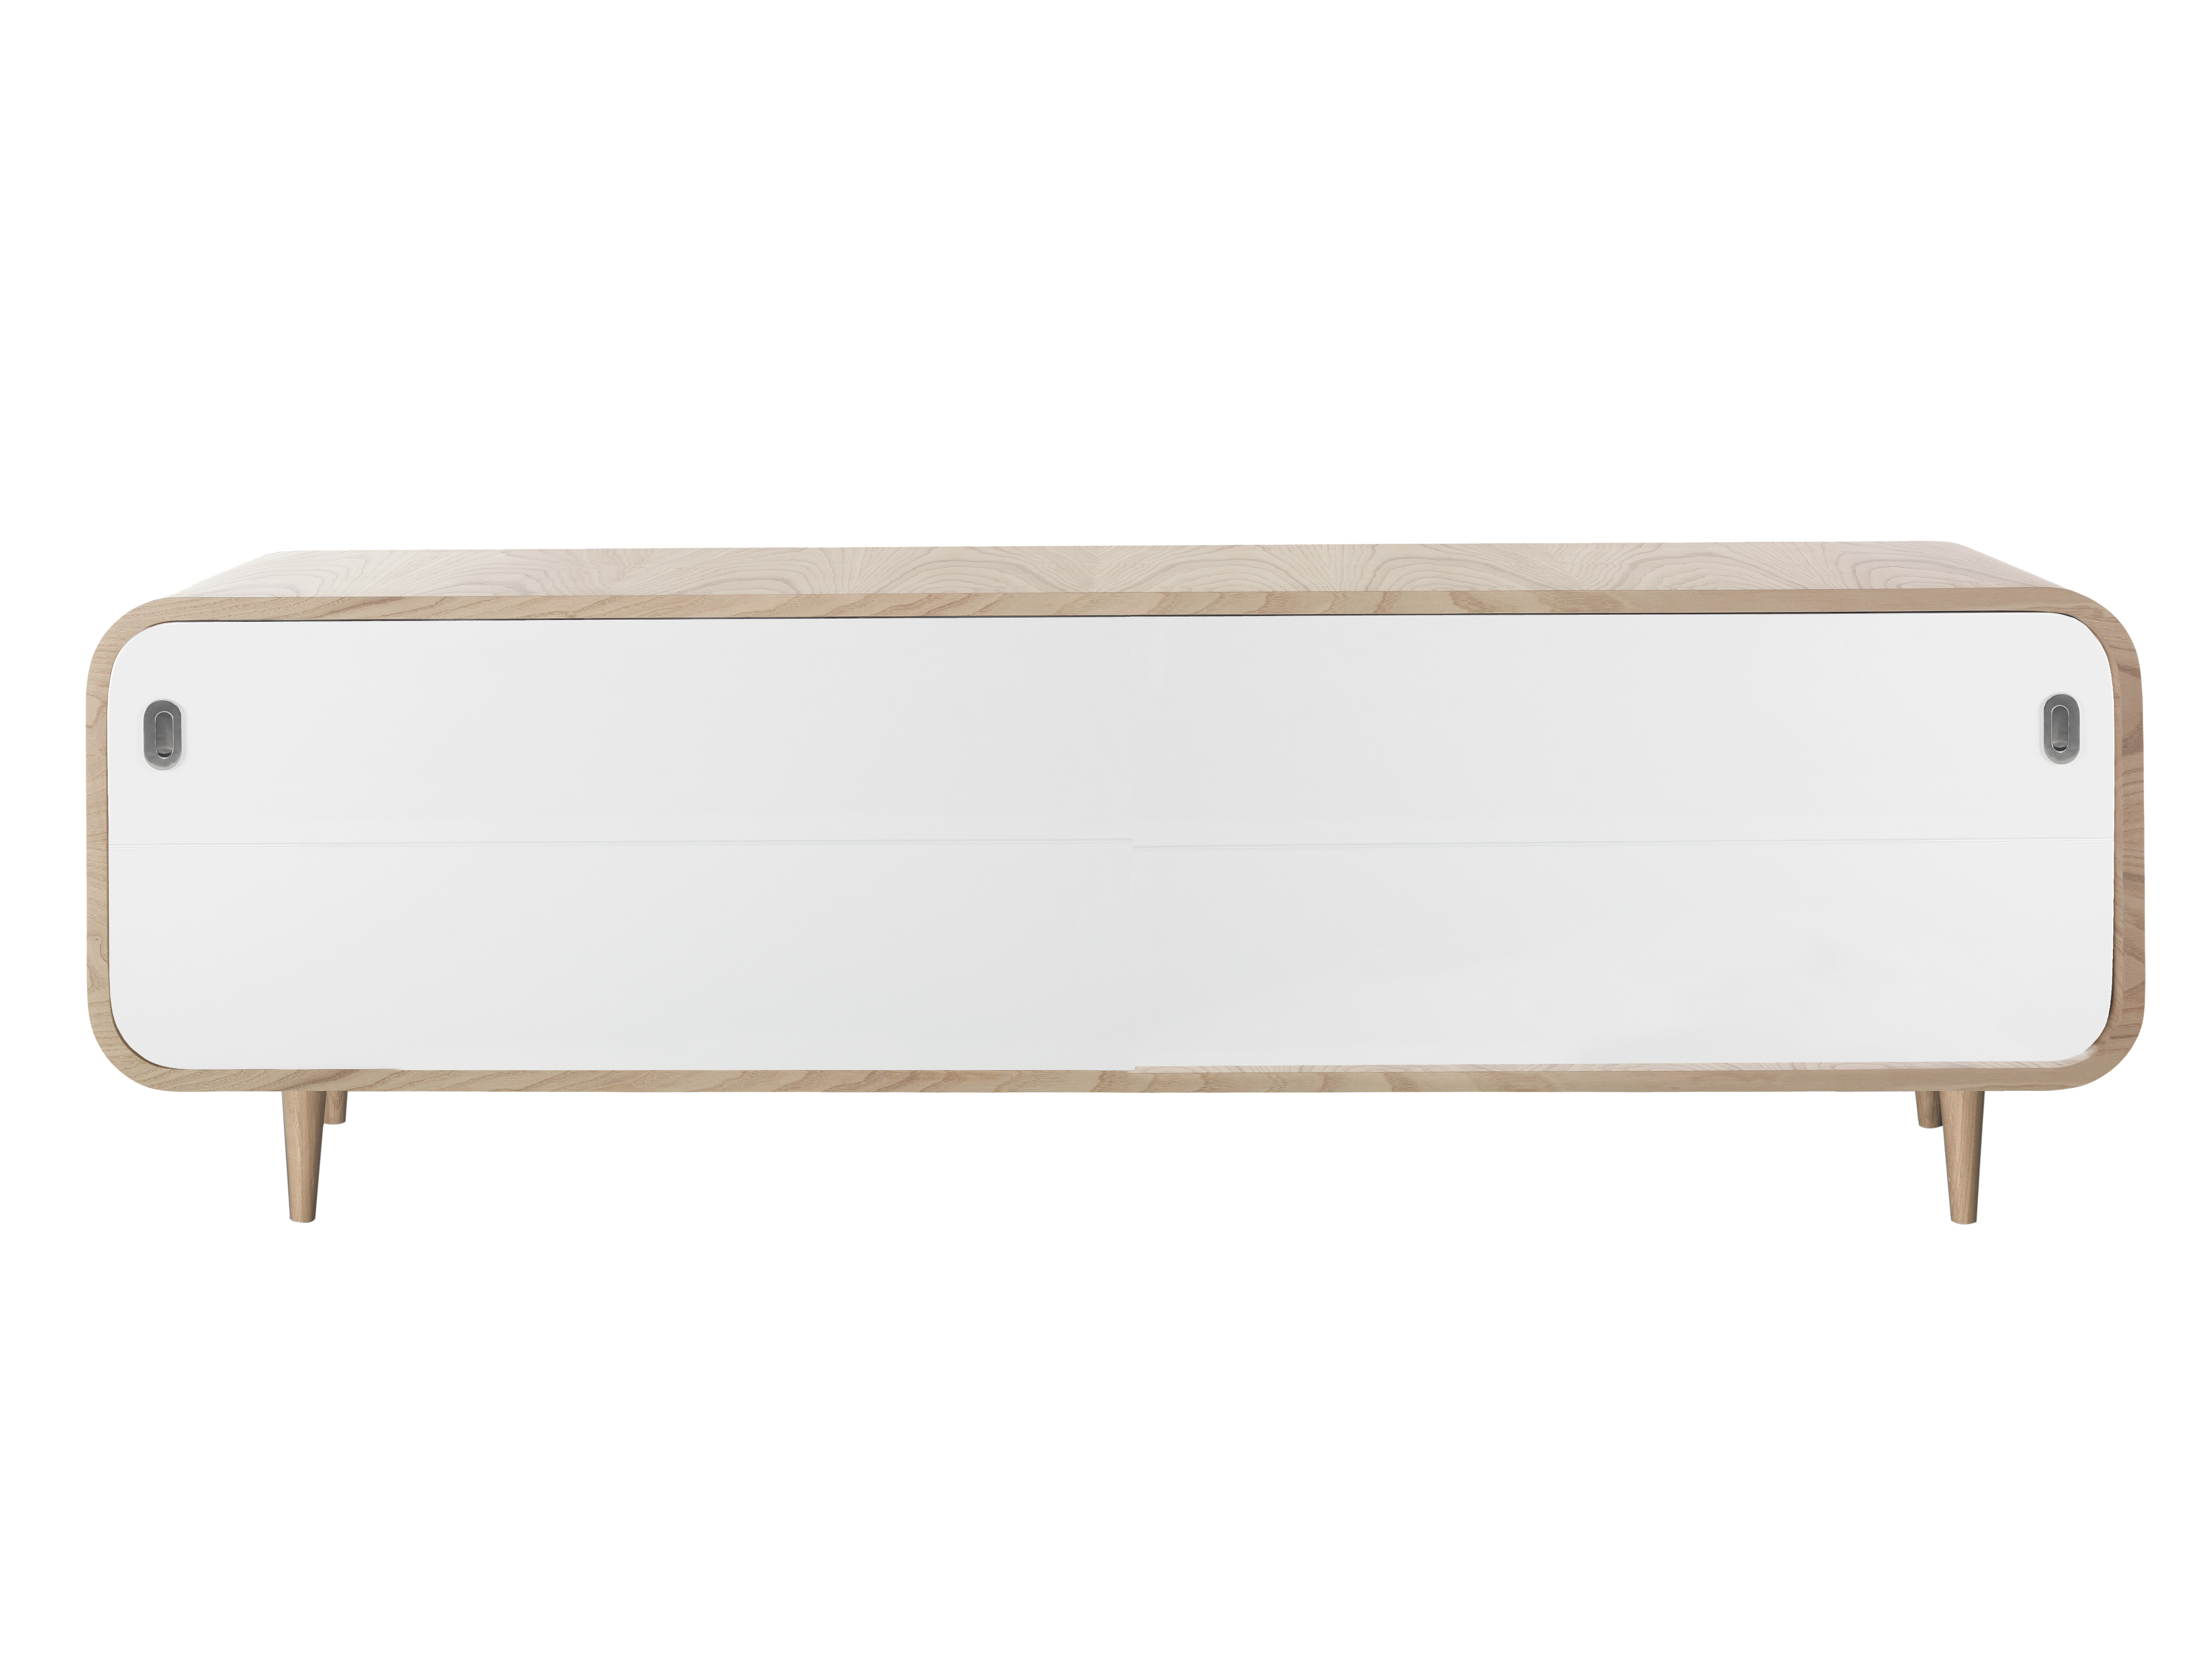 Marly sideboard with sliding doors by azea design victor caetano vtopaller Gallery